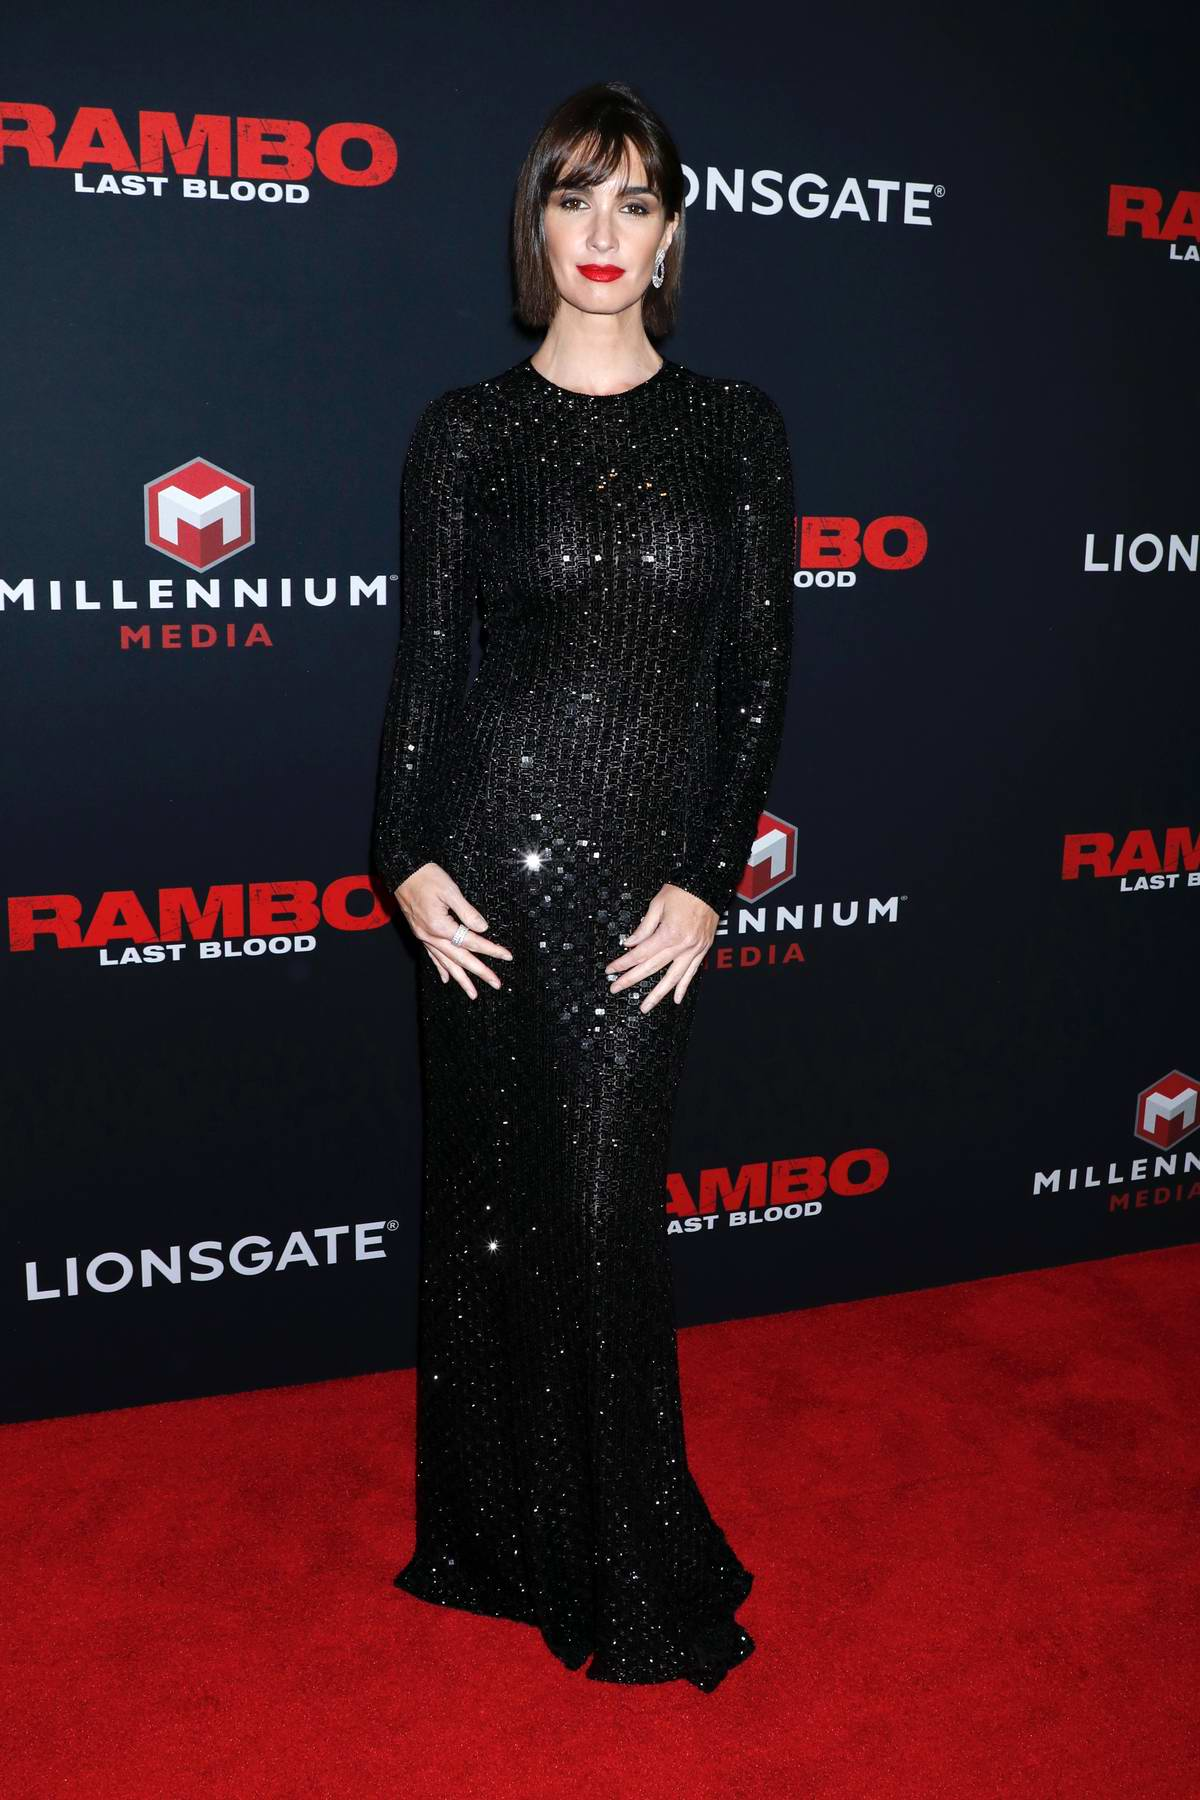 Paz Vega attends 'Rambo Last Blood' film special screening and fan event in New York City